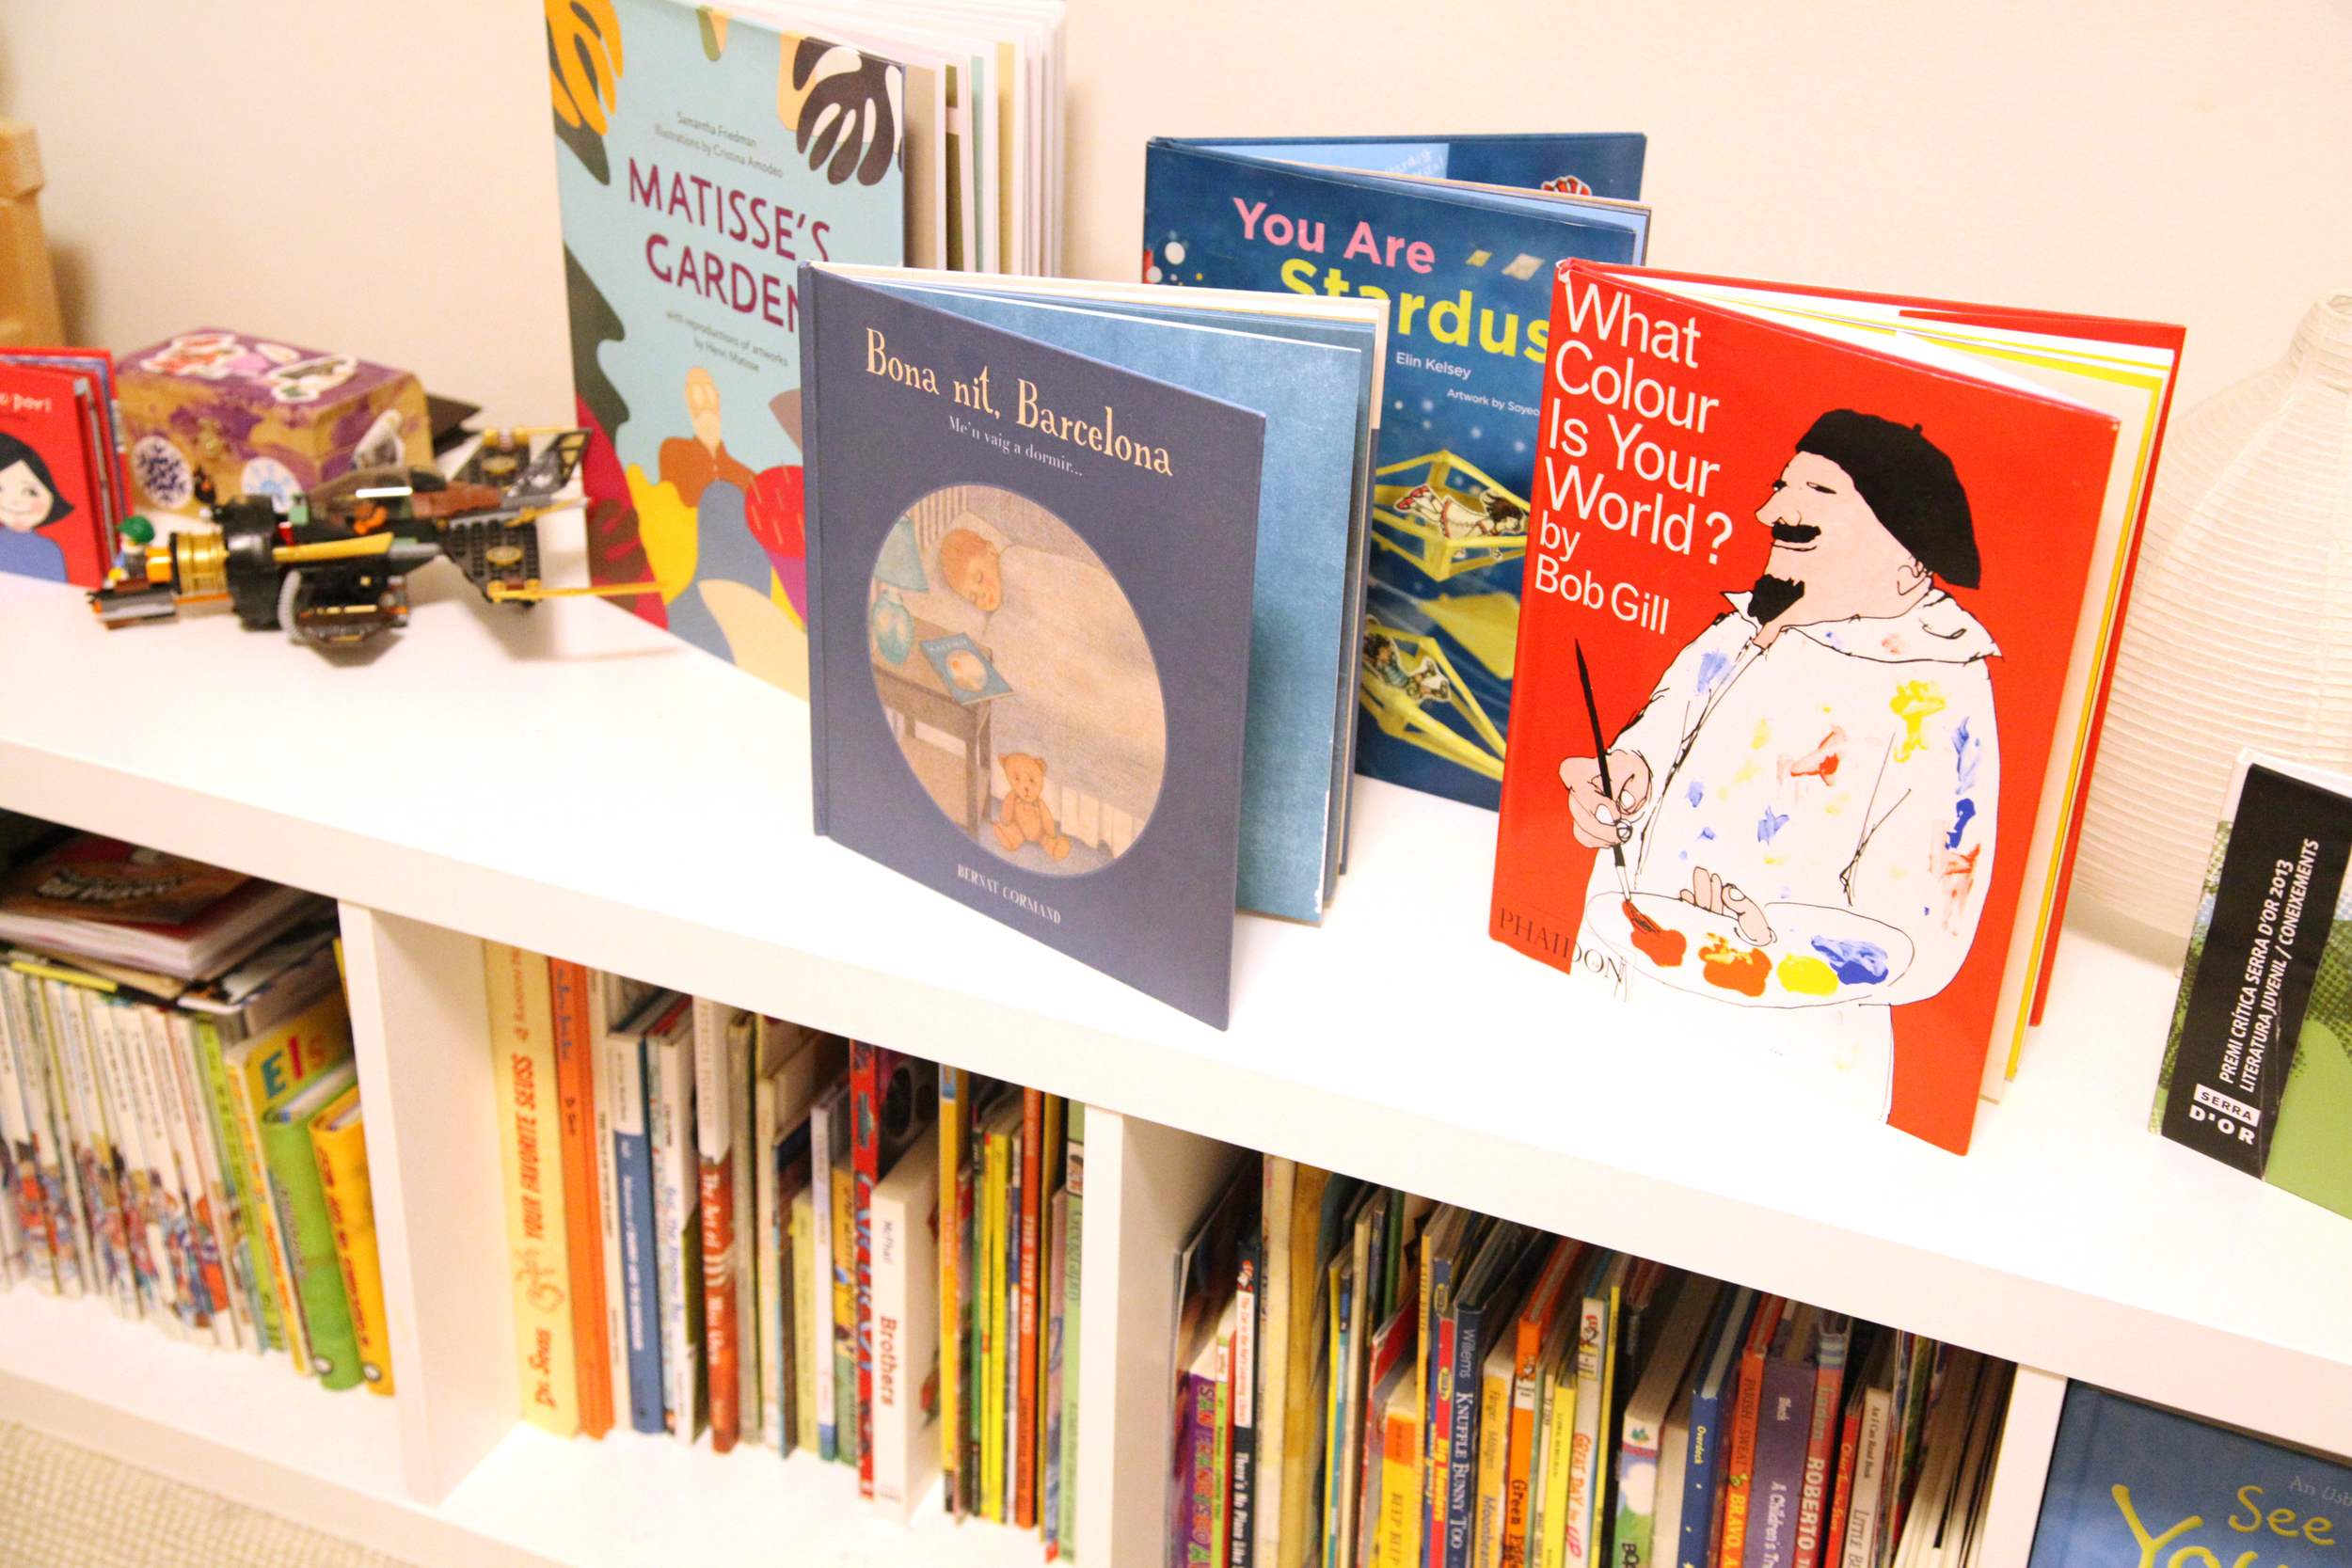 Some favorite stories:  What Color is Your World  ,   Matisse's Garden  ,   Your are Stardust  , and   Bona Nit, Barcelona.